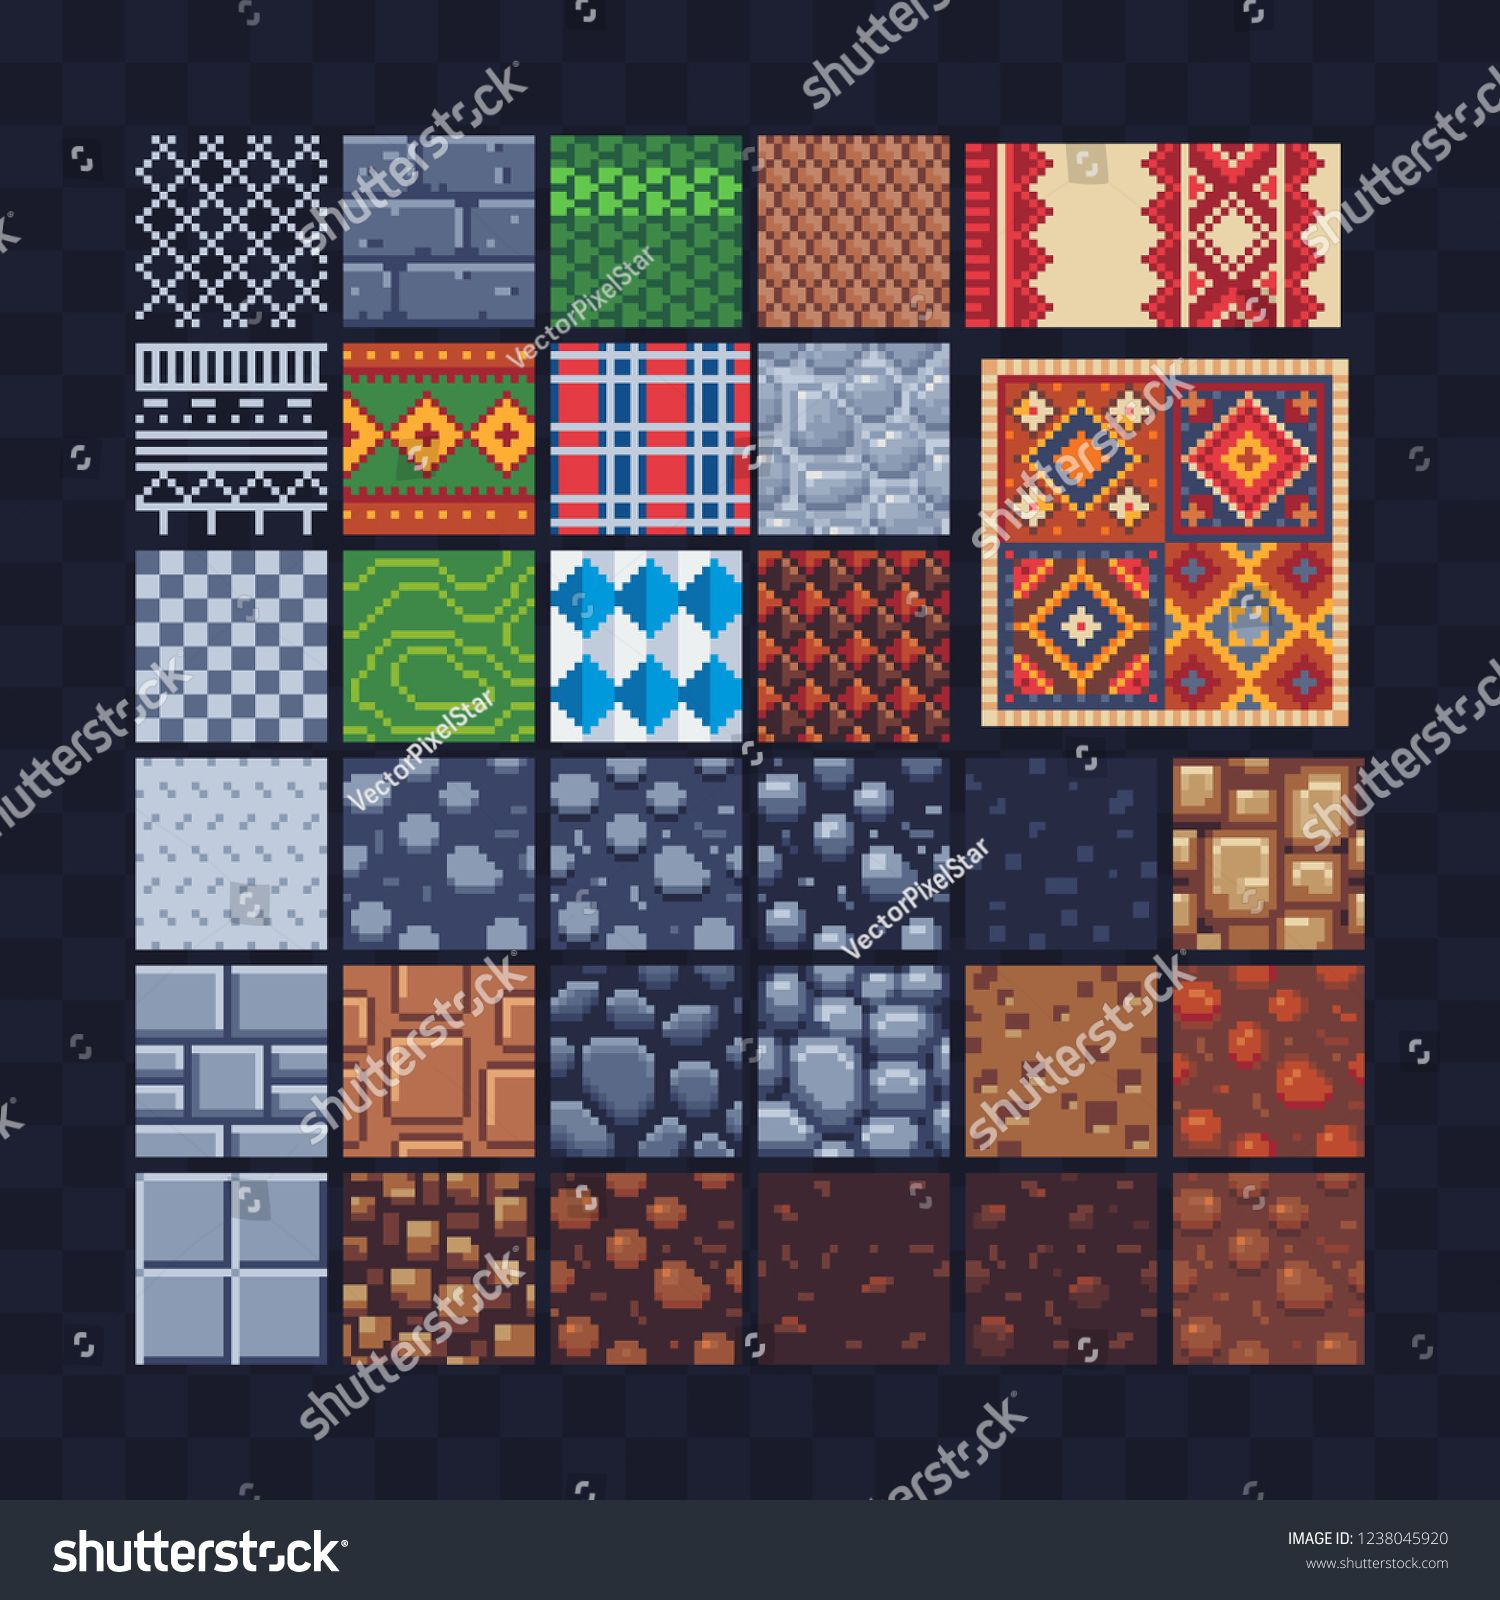 Different Texture Tile Seamless Pattern Set For Pixel Art Style